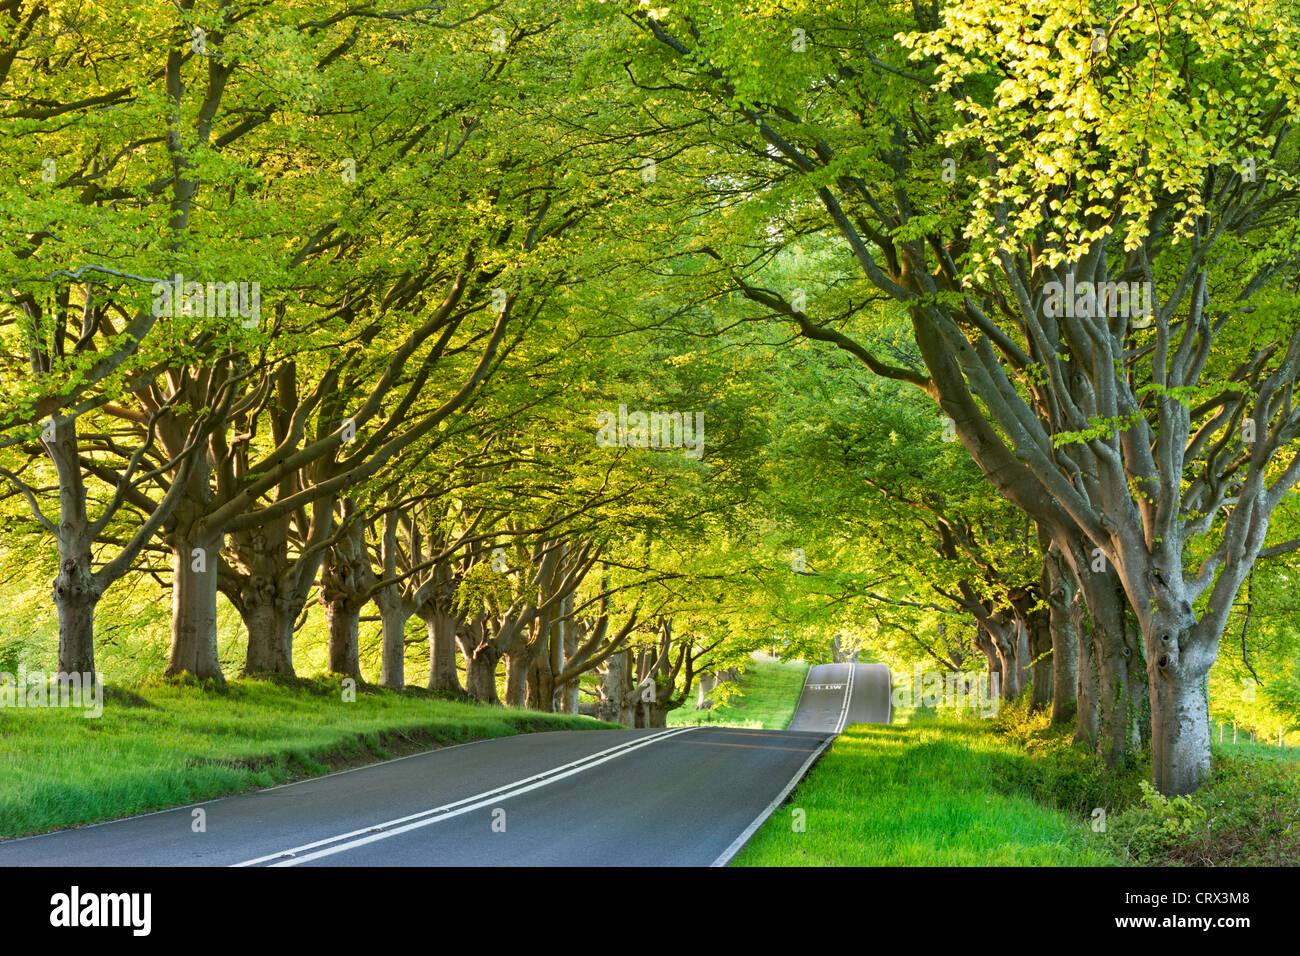 Beech tree lined road in springtime, Nr Wimborne, Dorset, England. Spring (May) 2012. - Stock Image